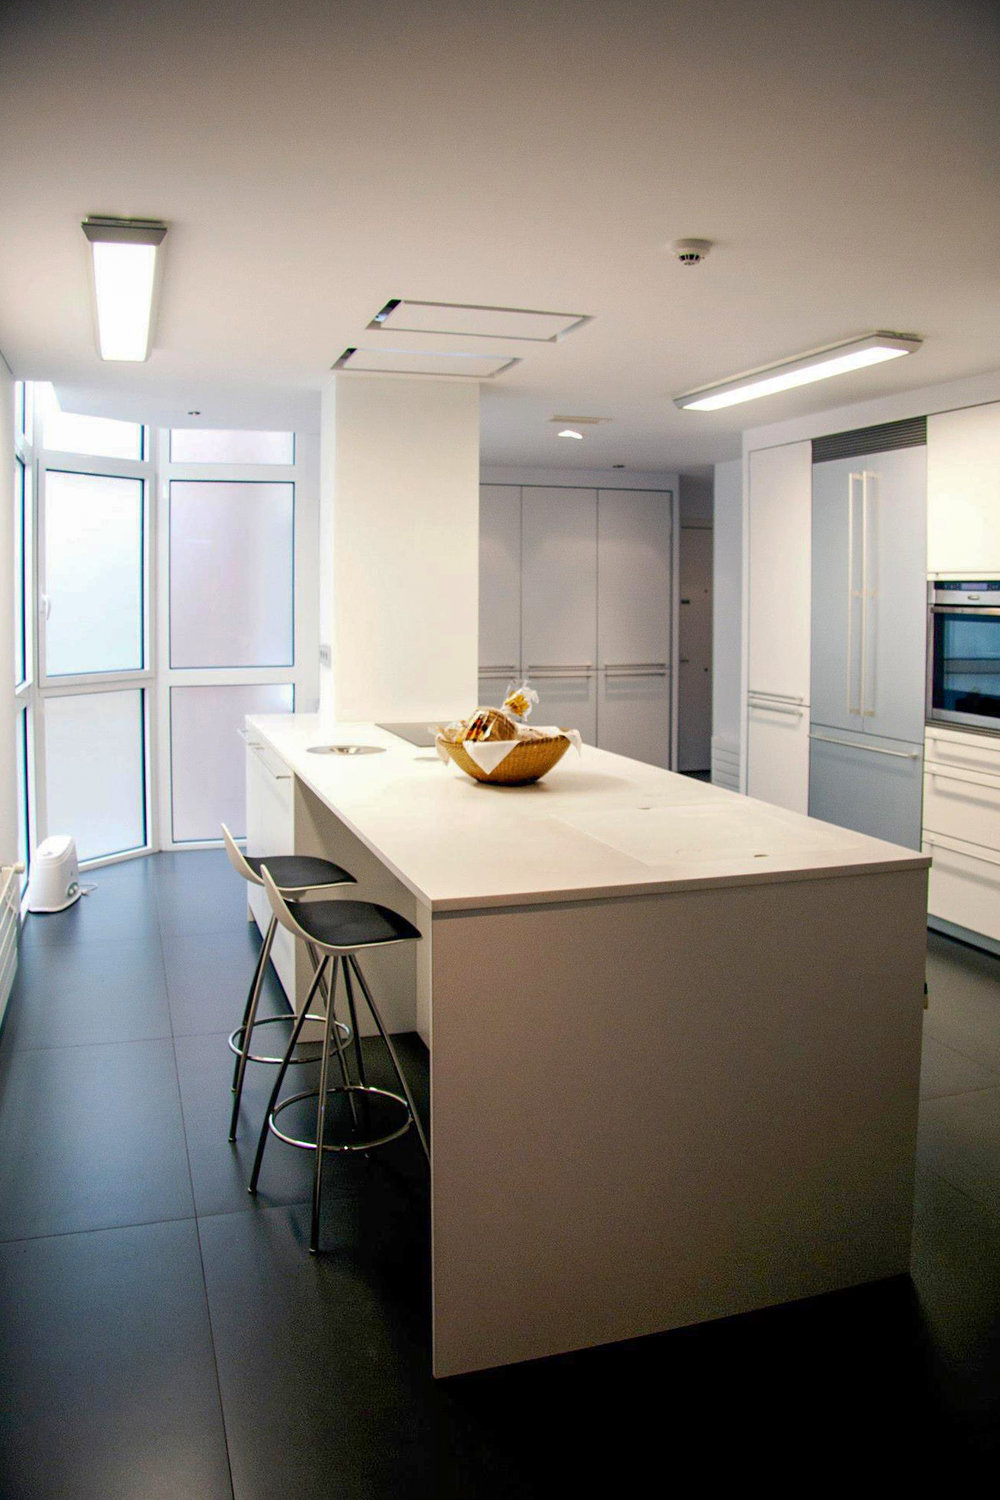 the kitchen island included a faucet that retracts and hide under a corian lid.